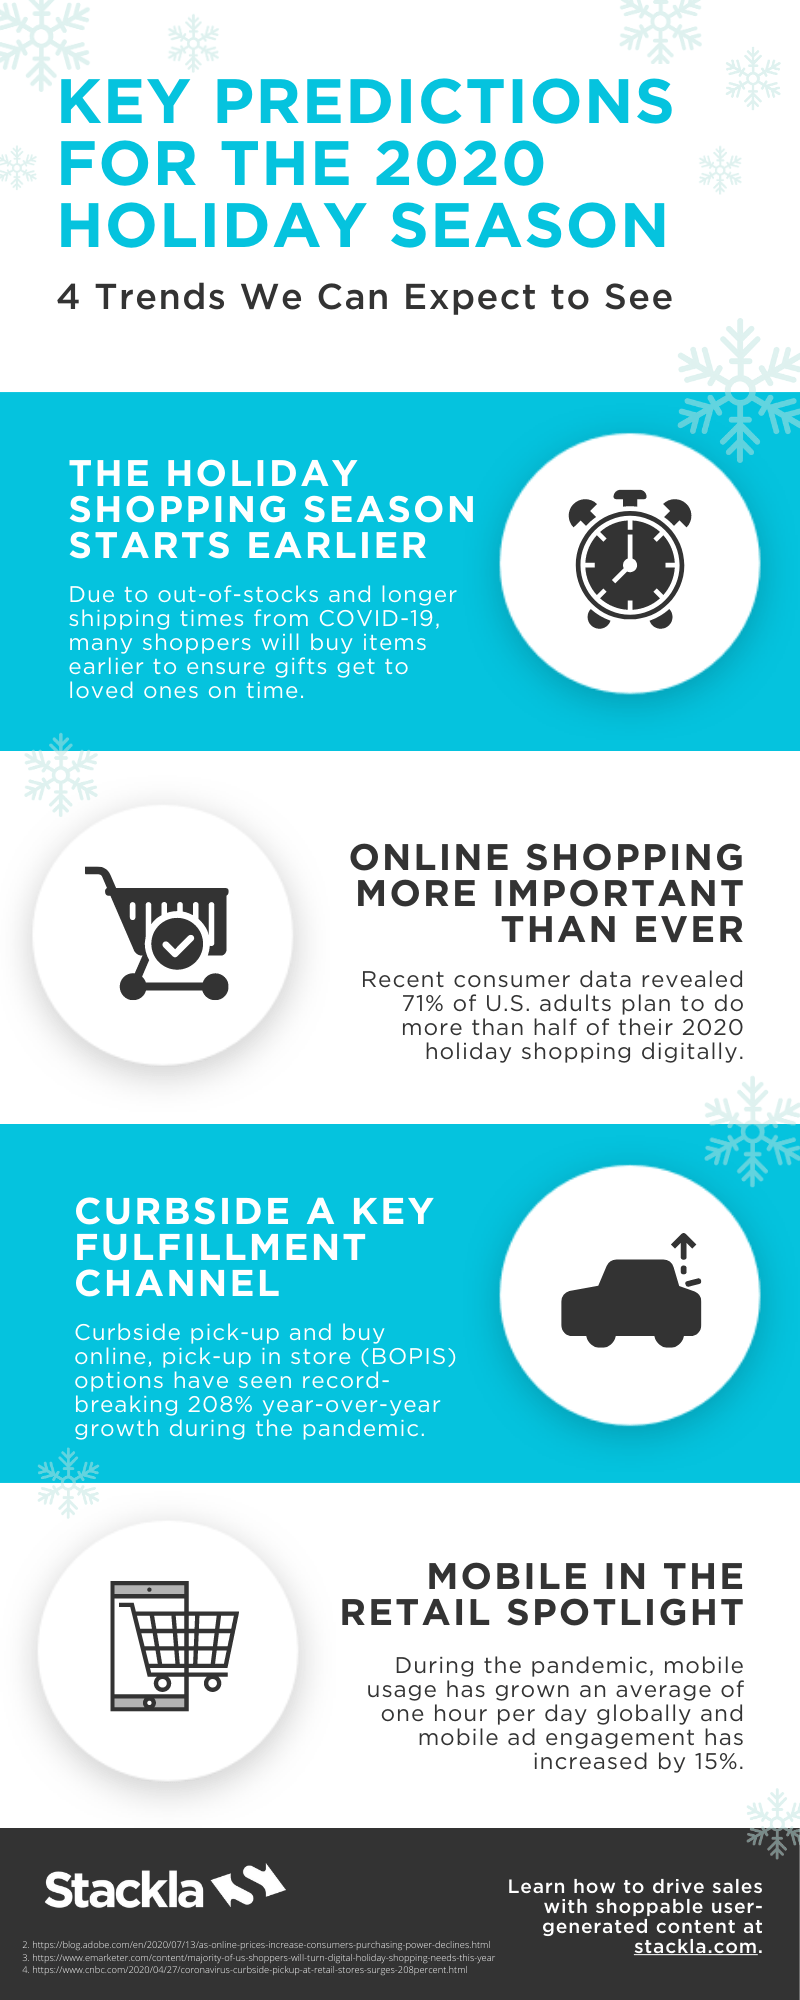 4 Key Predictions for the 2020 Holiday Shopping Season Infographic Image